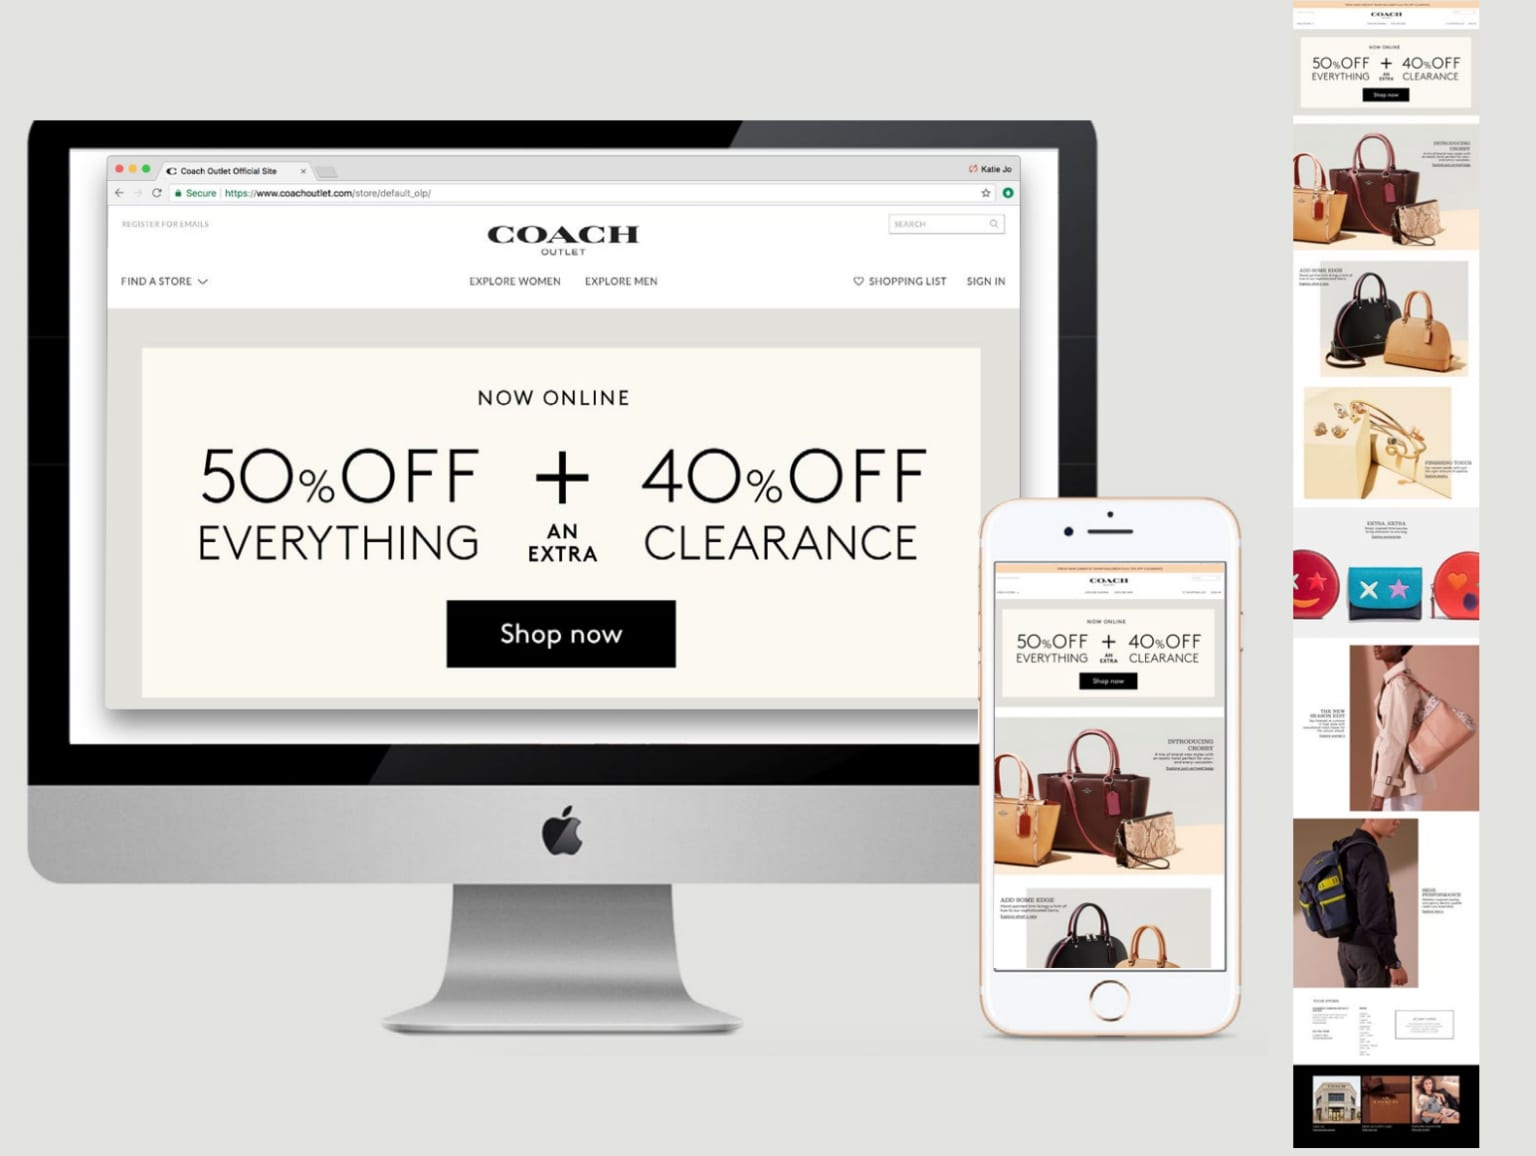 Coach Outlet Digital